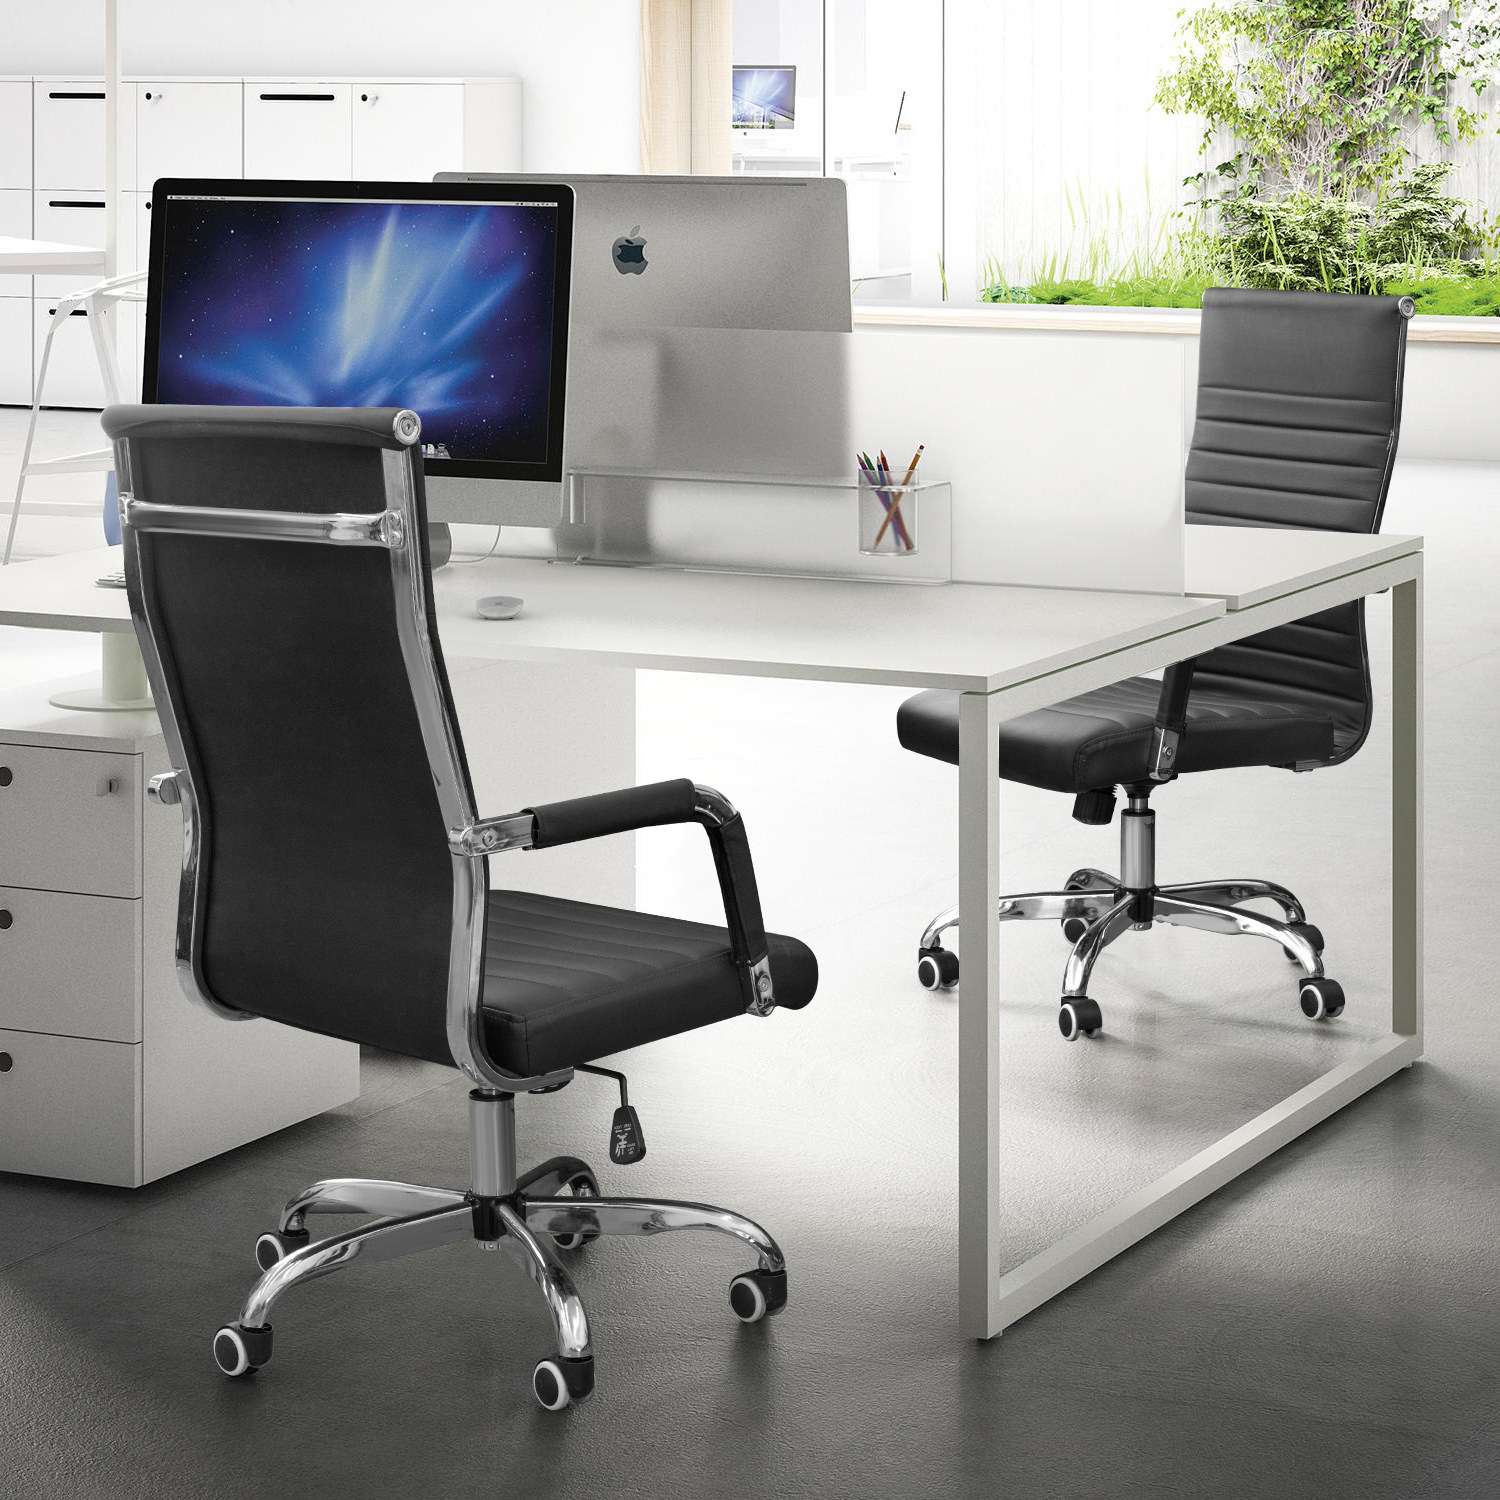 two black rolling office chairs in an office space